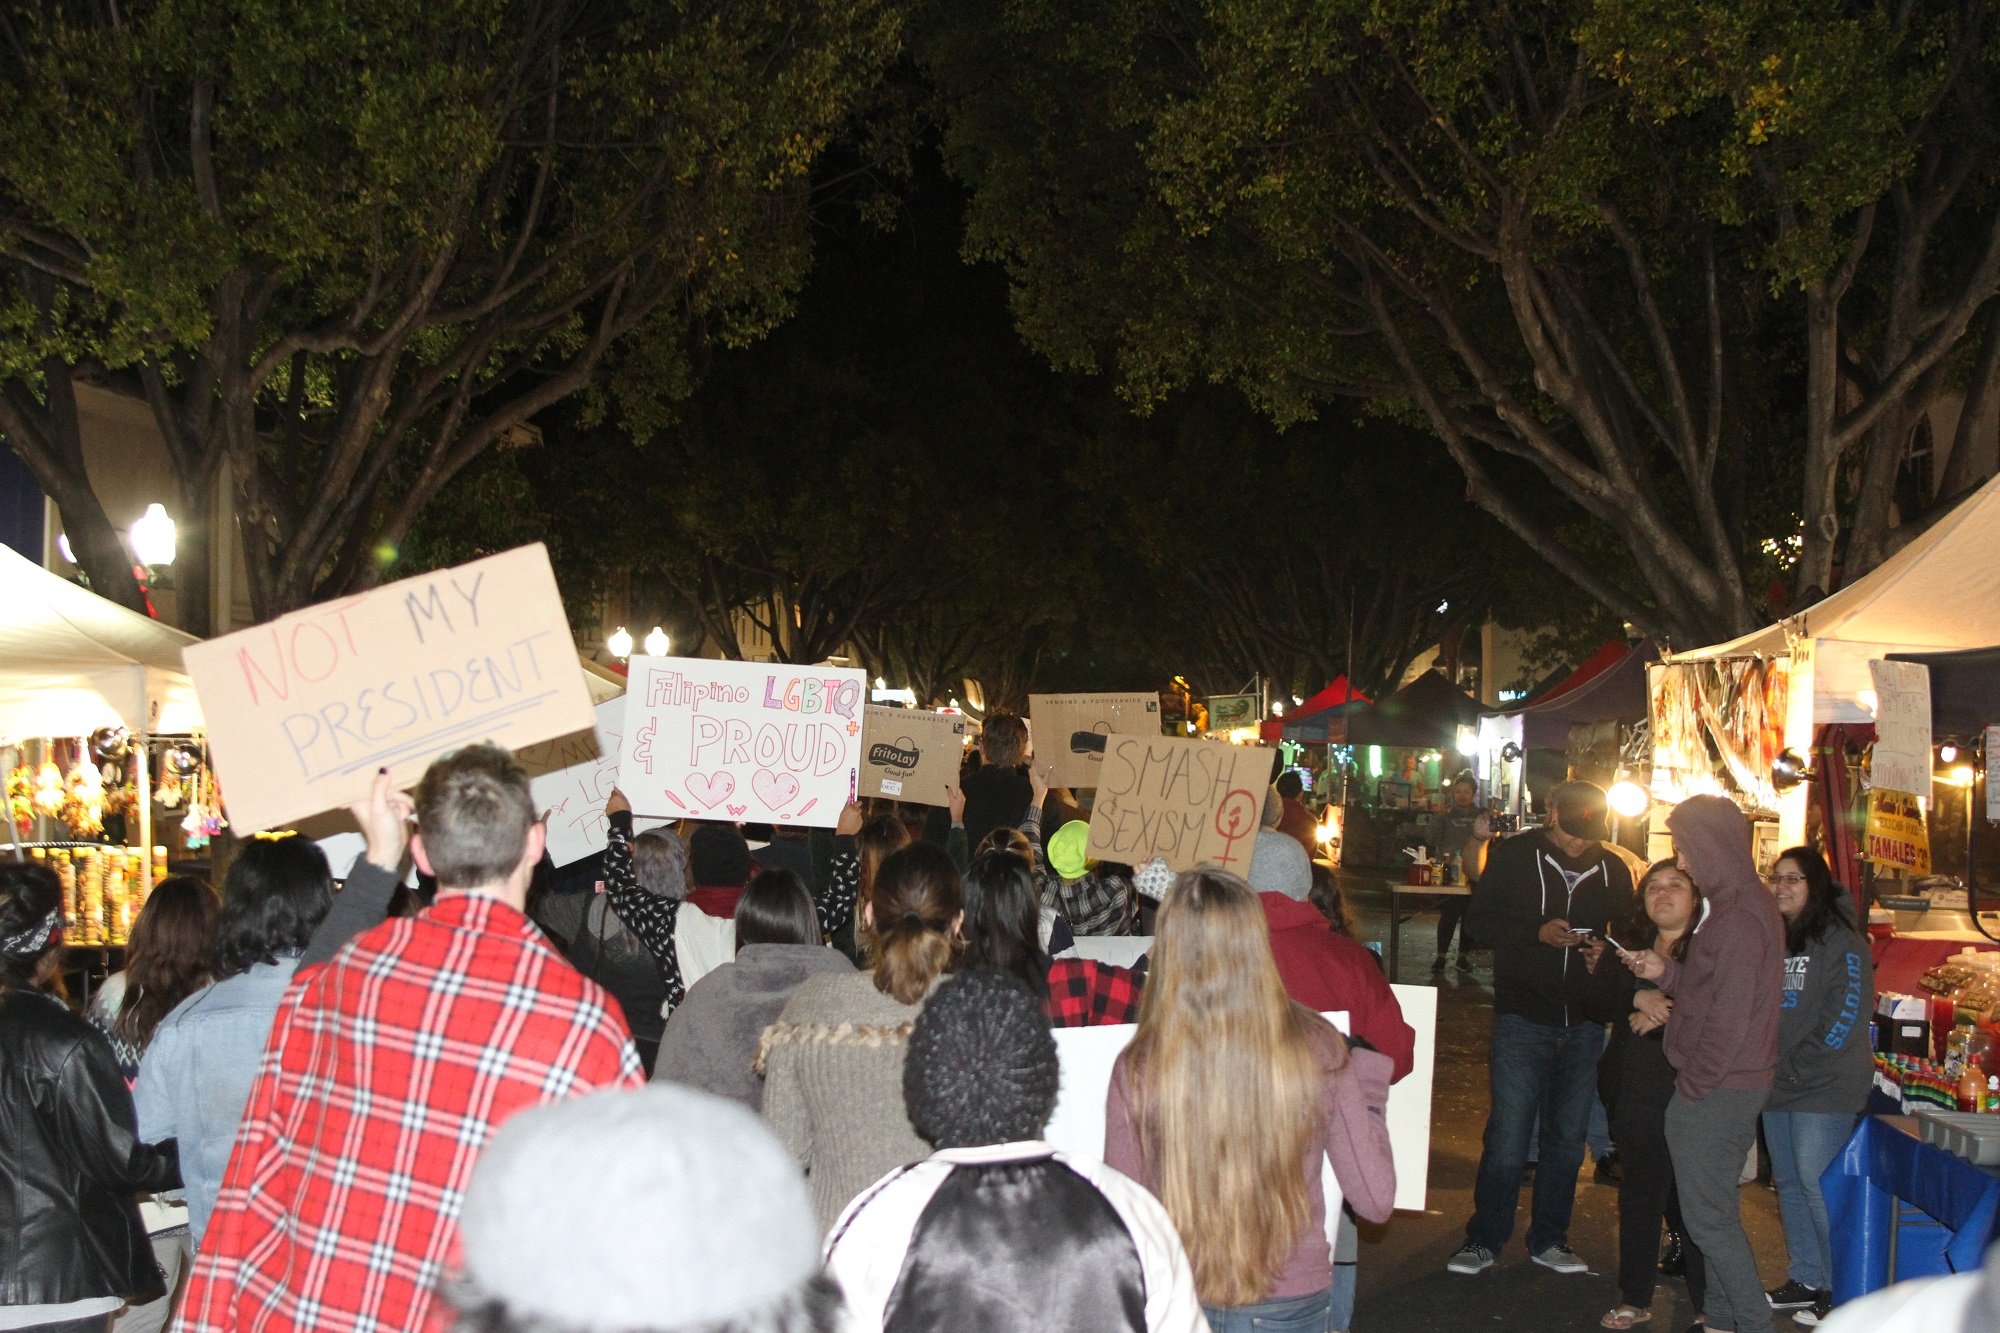 Bulldogs Against Hate March in Protest through Downtown Redlands